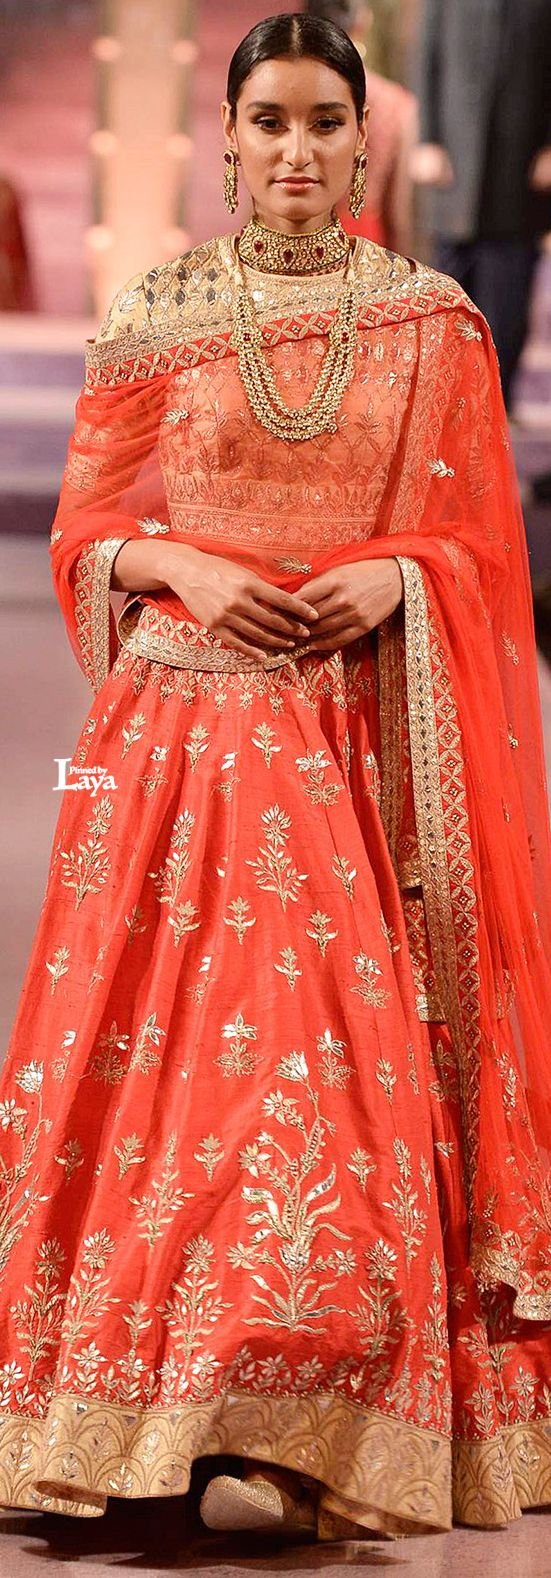 ♔ANITA DONGRE♔ Make in India 2016♔